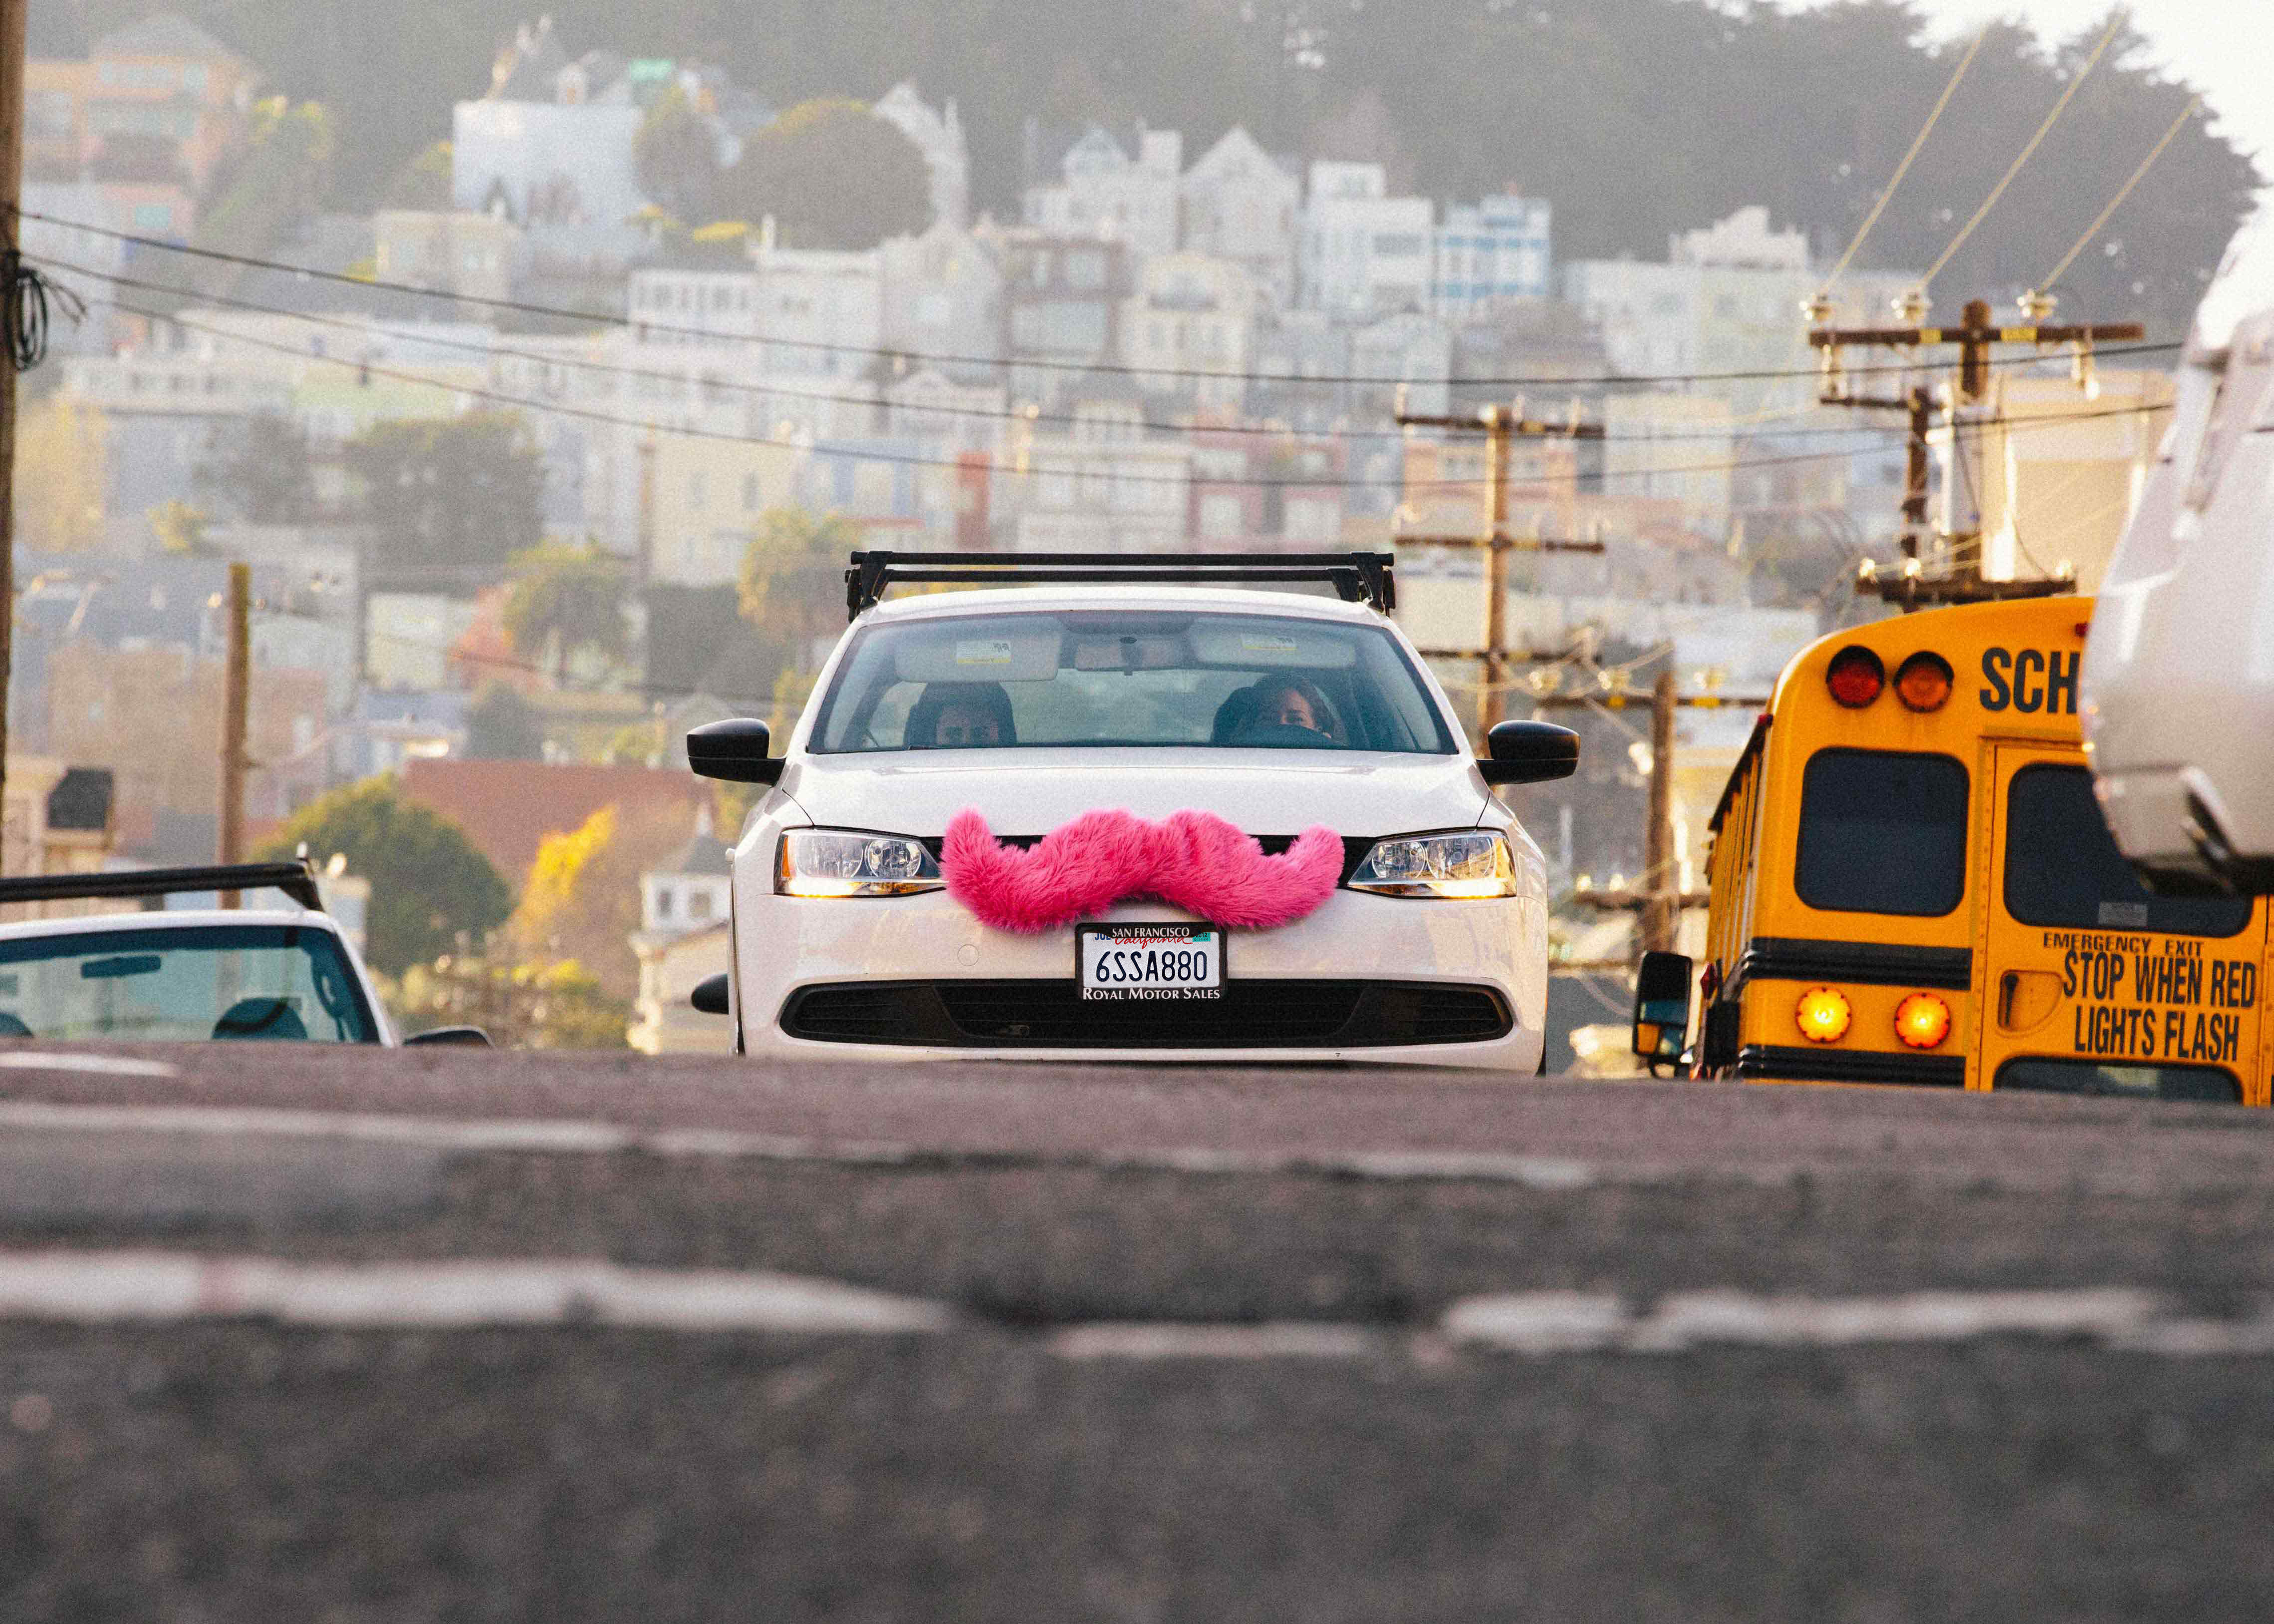 A Lyft car operates in San Francisco.